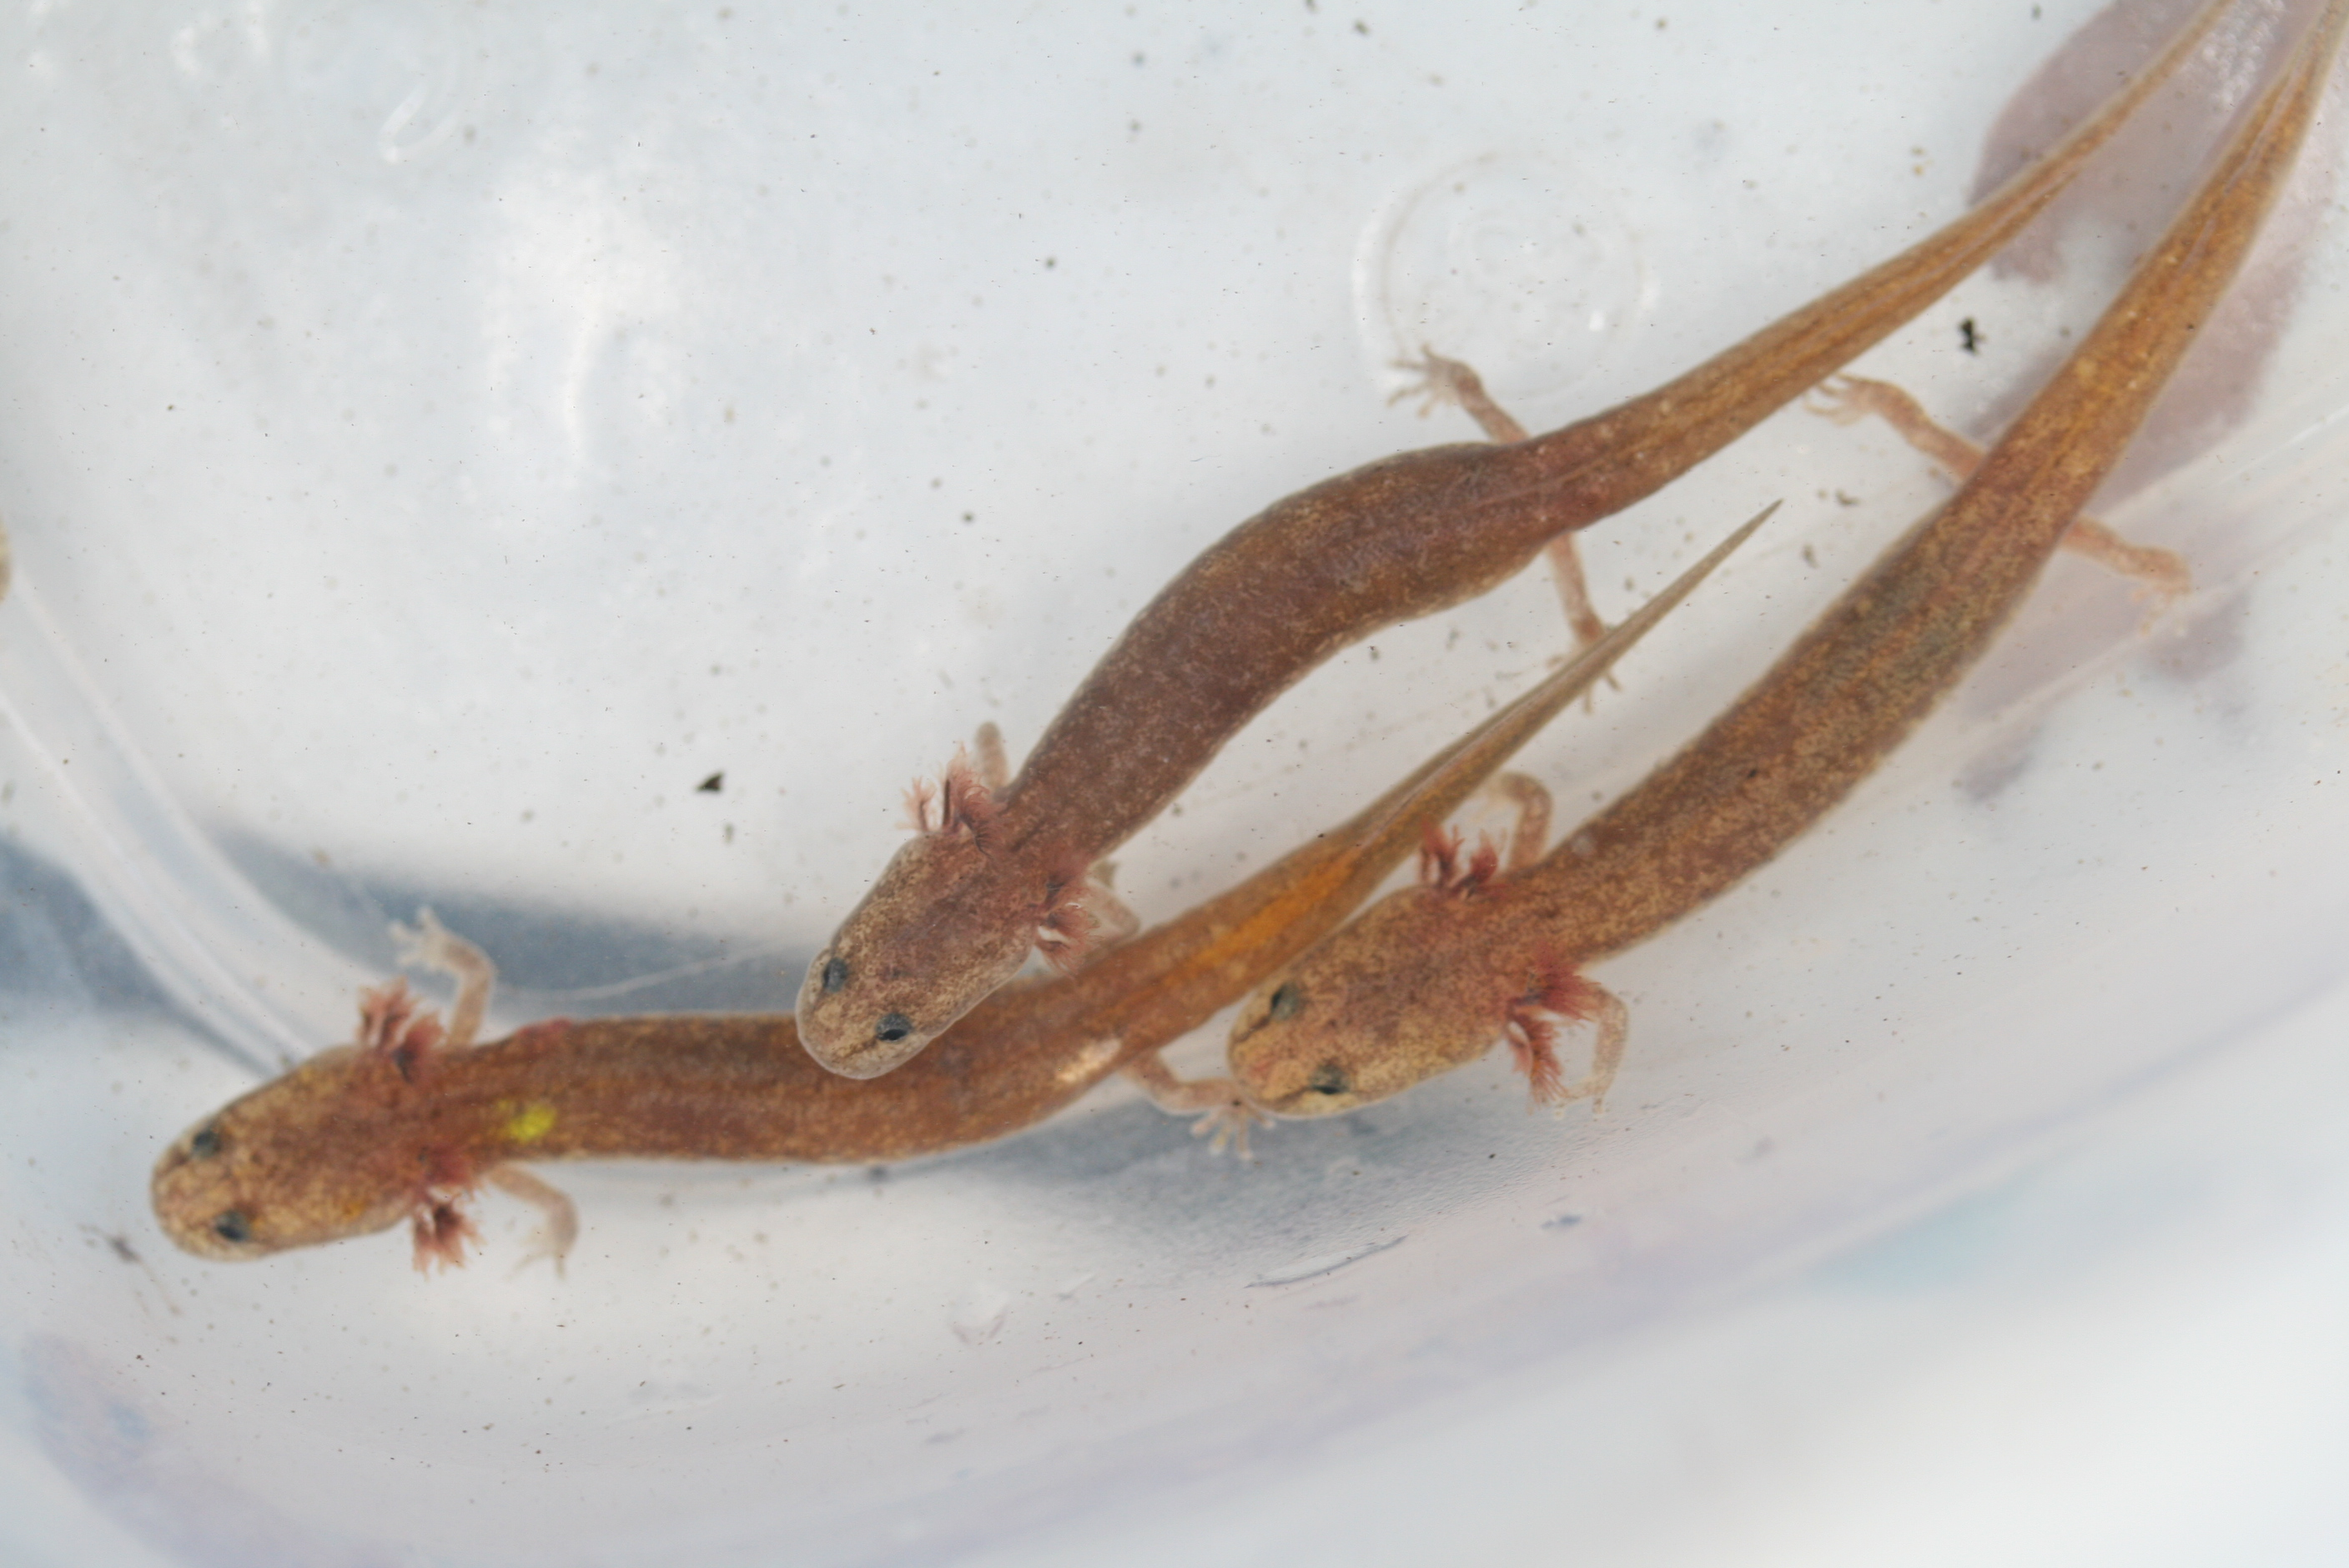 By Georgetown Salamander - At Twin Springs preserve on a monthy survey, CC BY-SA 3.0, https://commons.wikimedia.org/w/index.php?curid=27086717